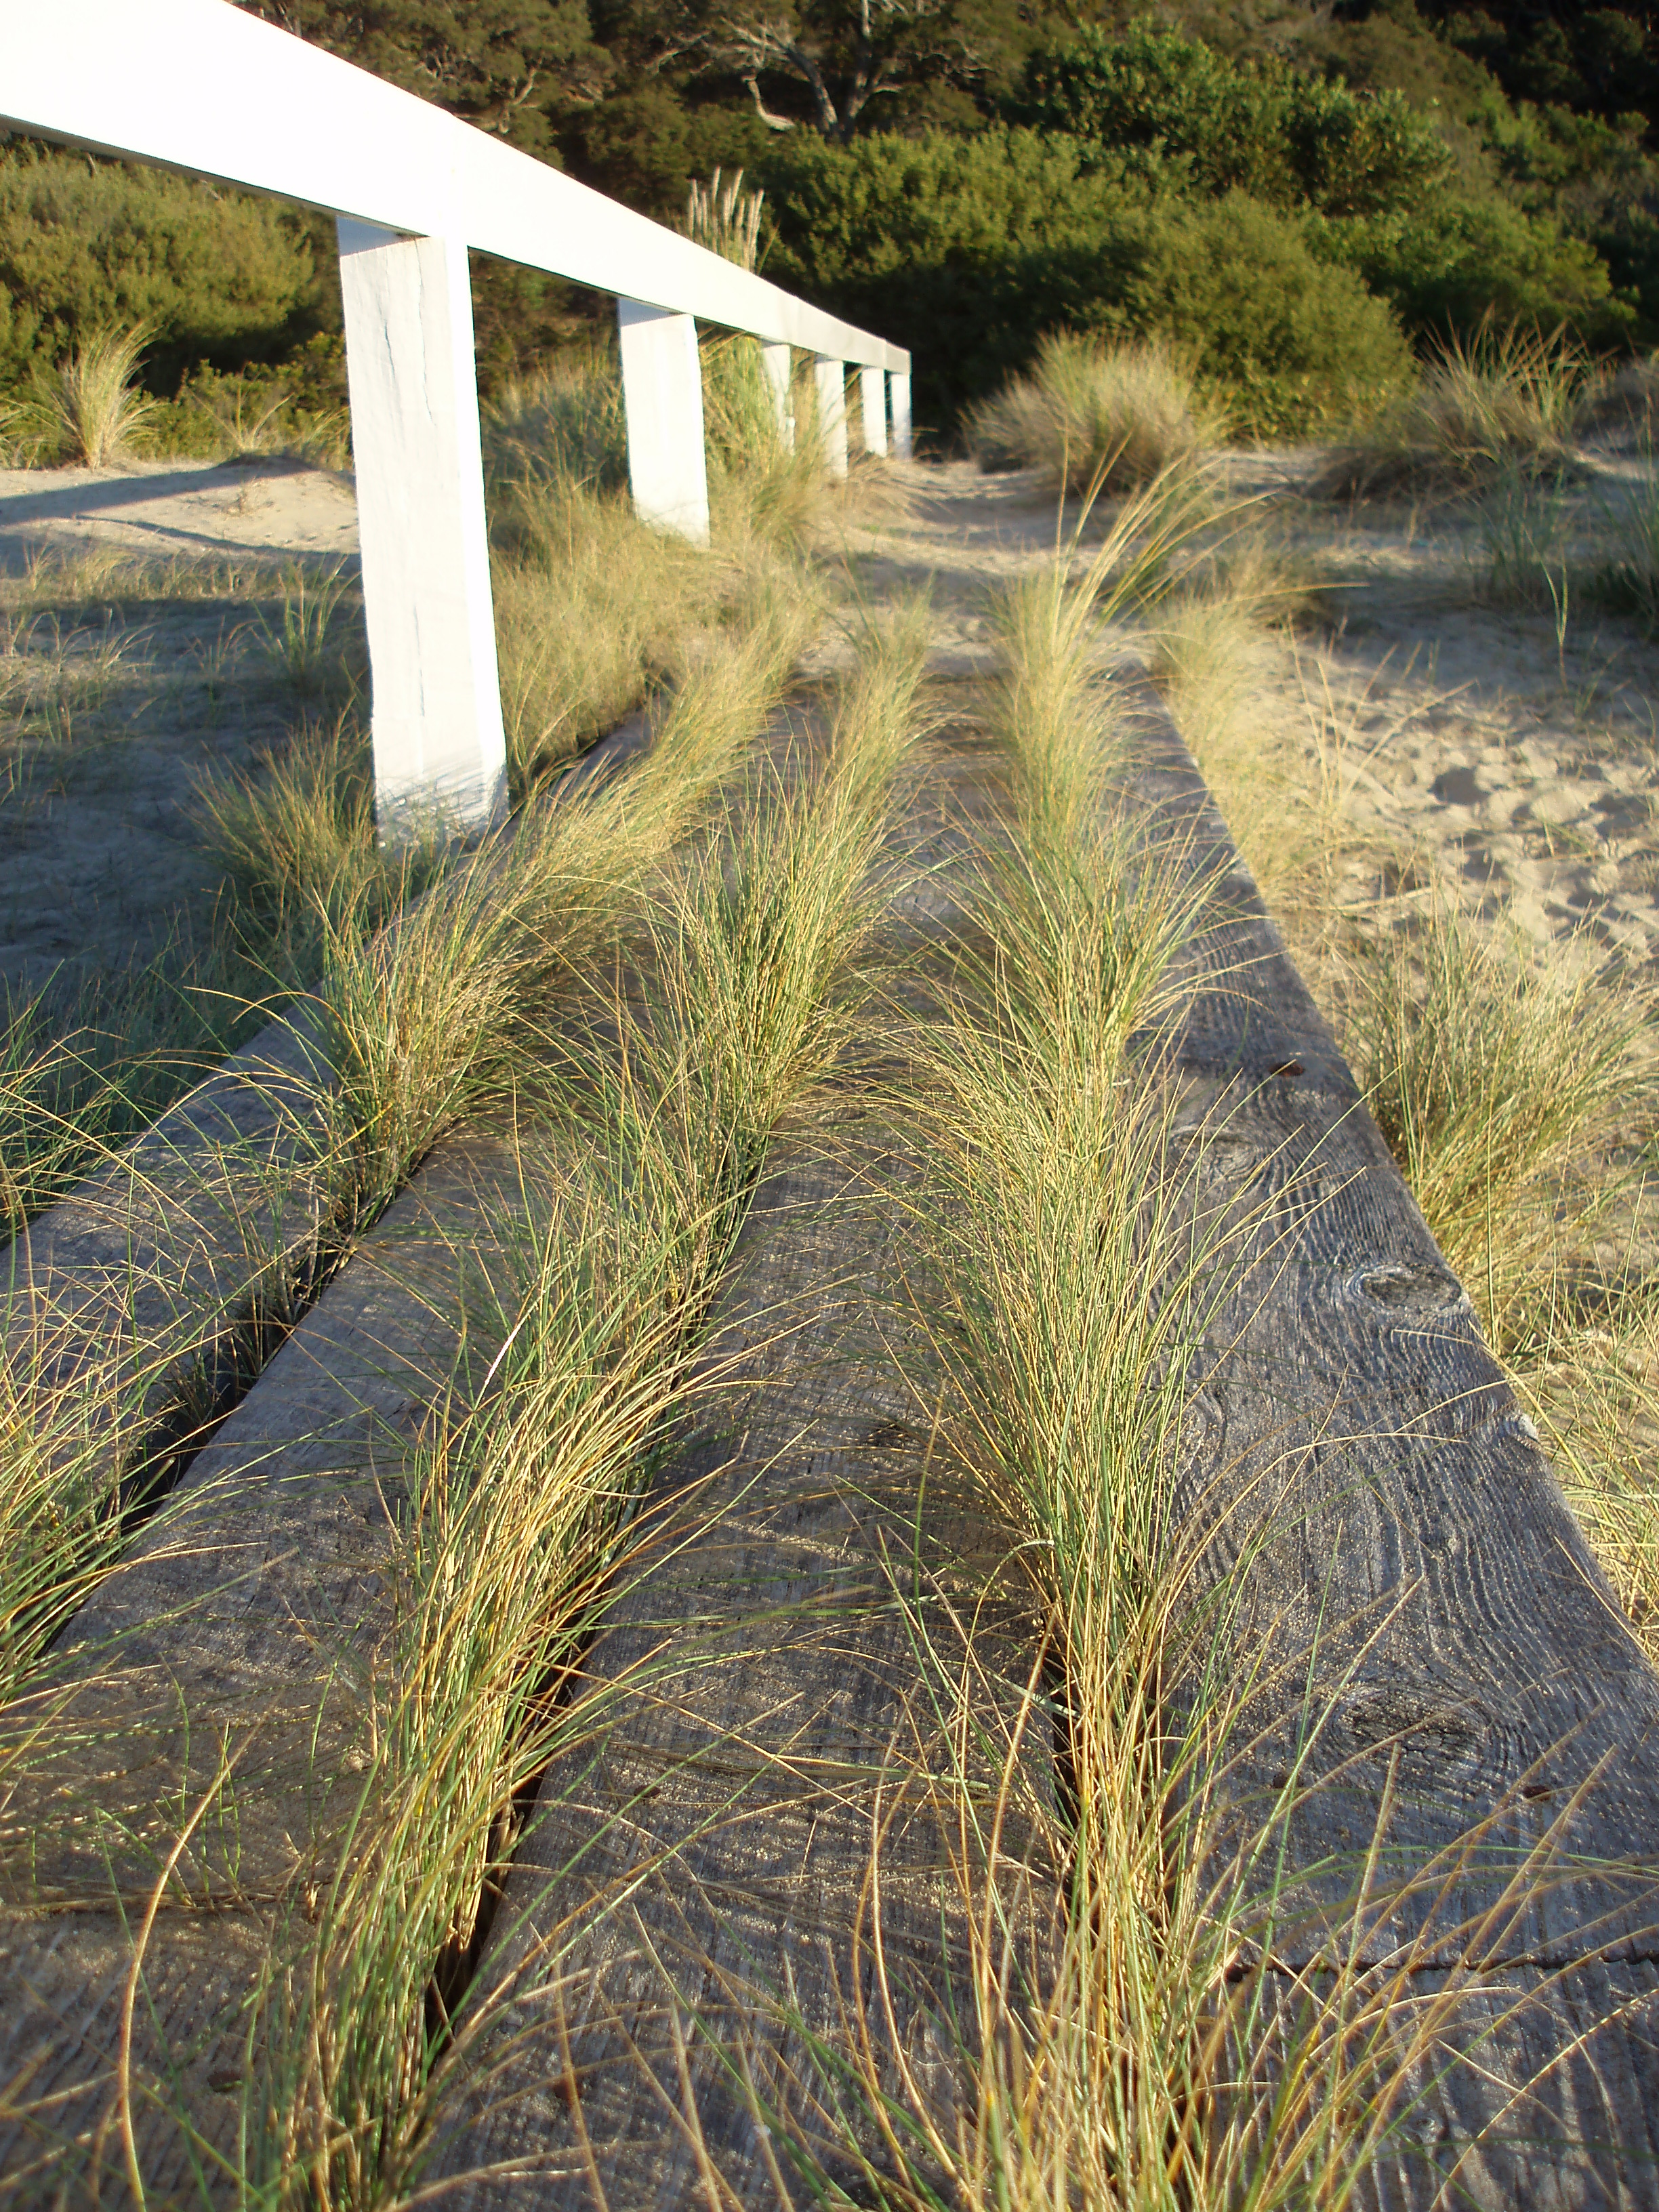 grasses growing through cracks in an old wooden walkway